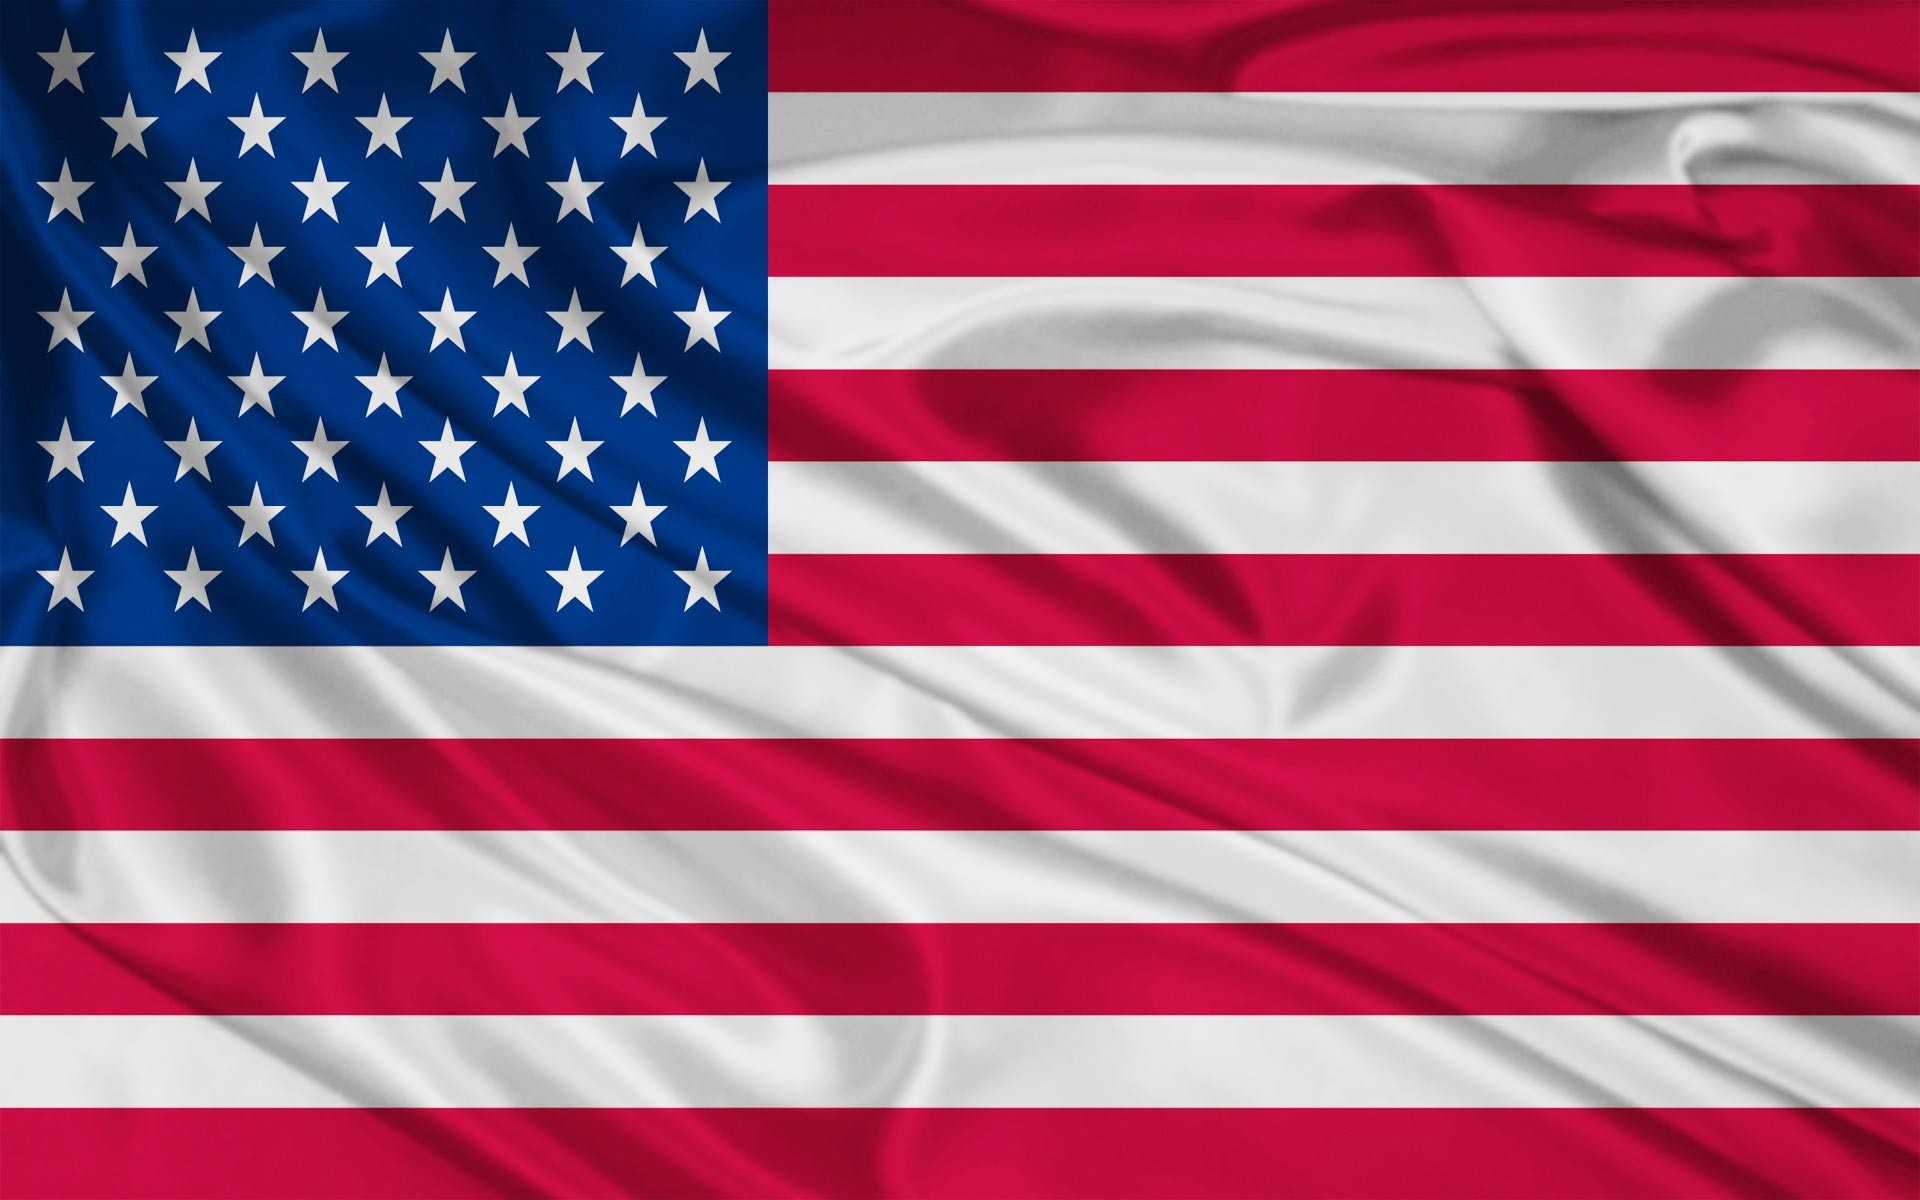 1920x1200 America Desktop Wallpapers. Download free wallpapers and screensavers at American  Greetings ...